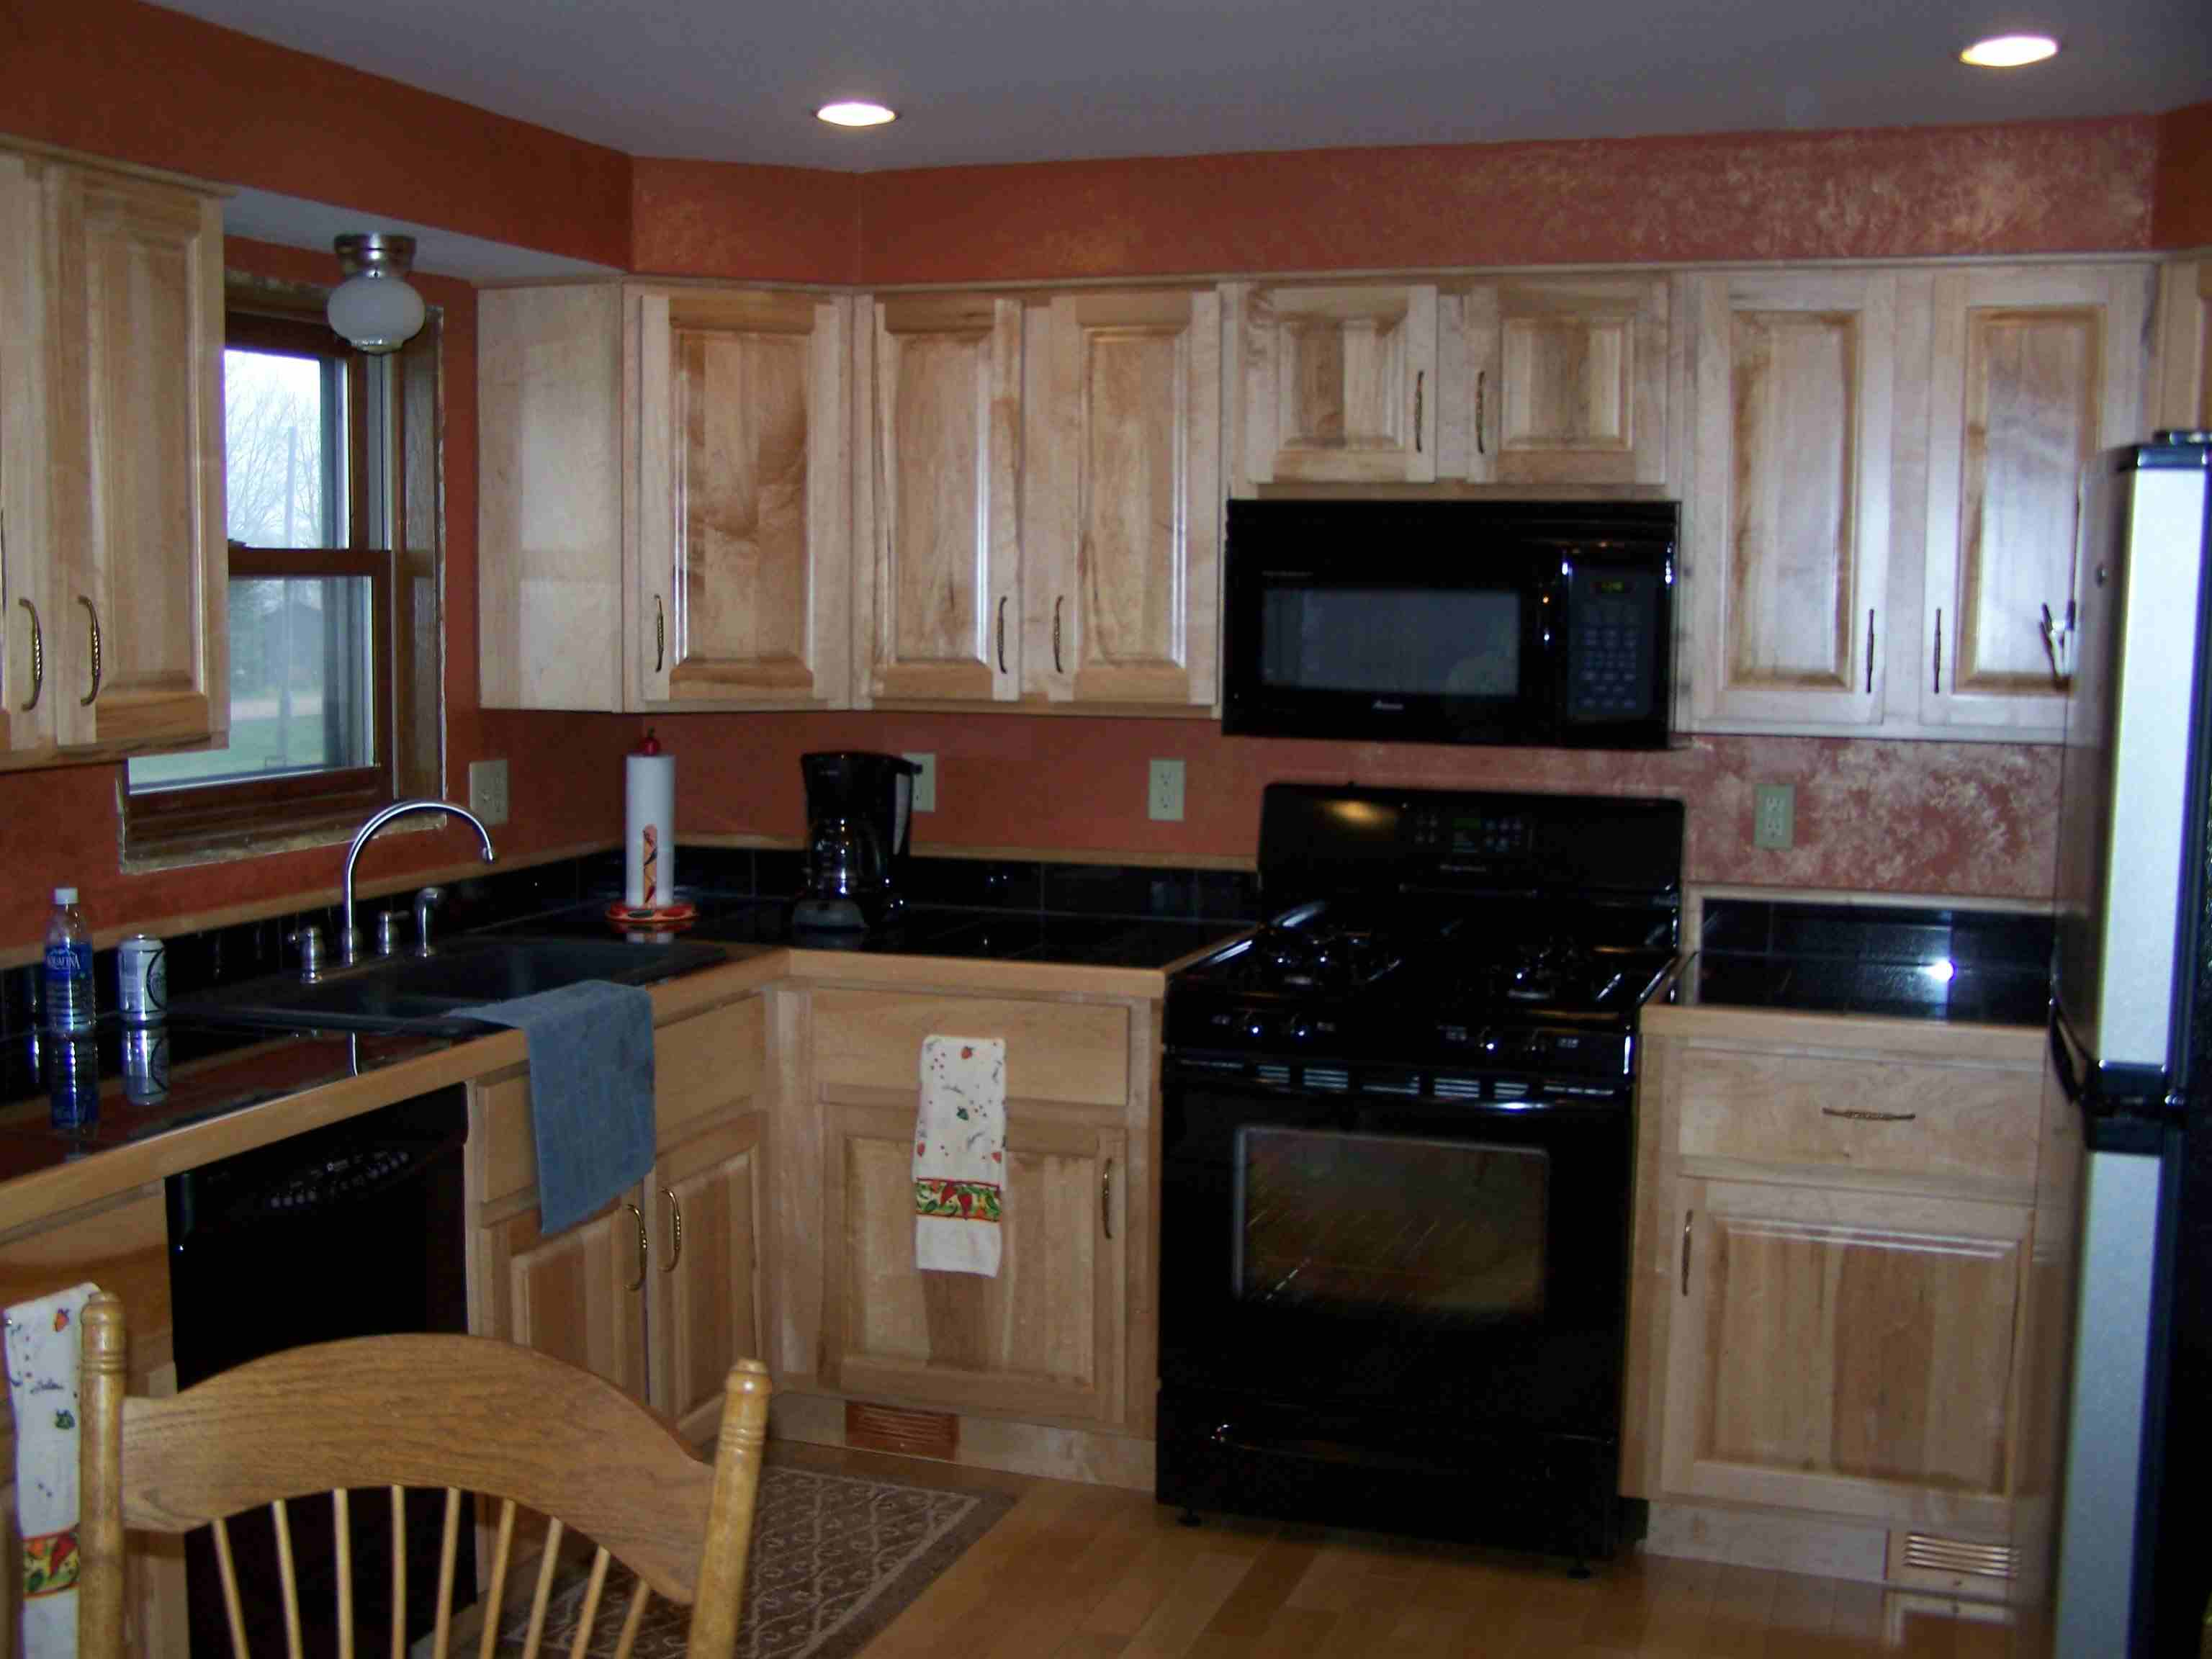 maple kitchen on Best Countertops For Maple Cabinets  id=56934